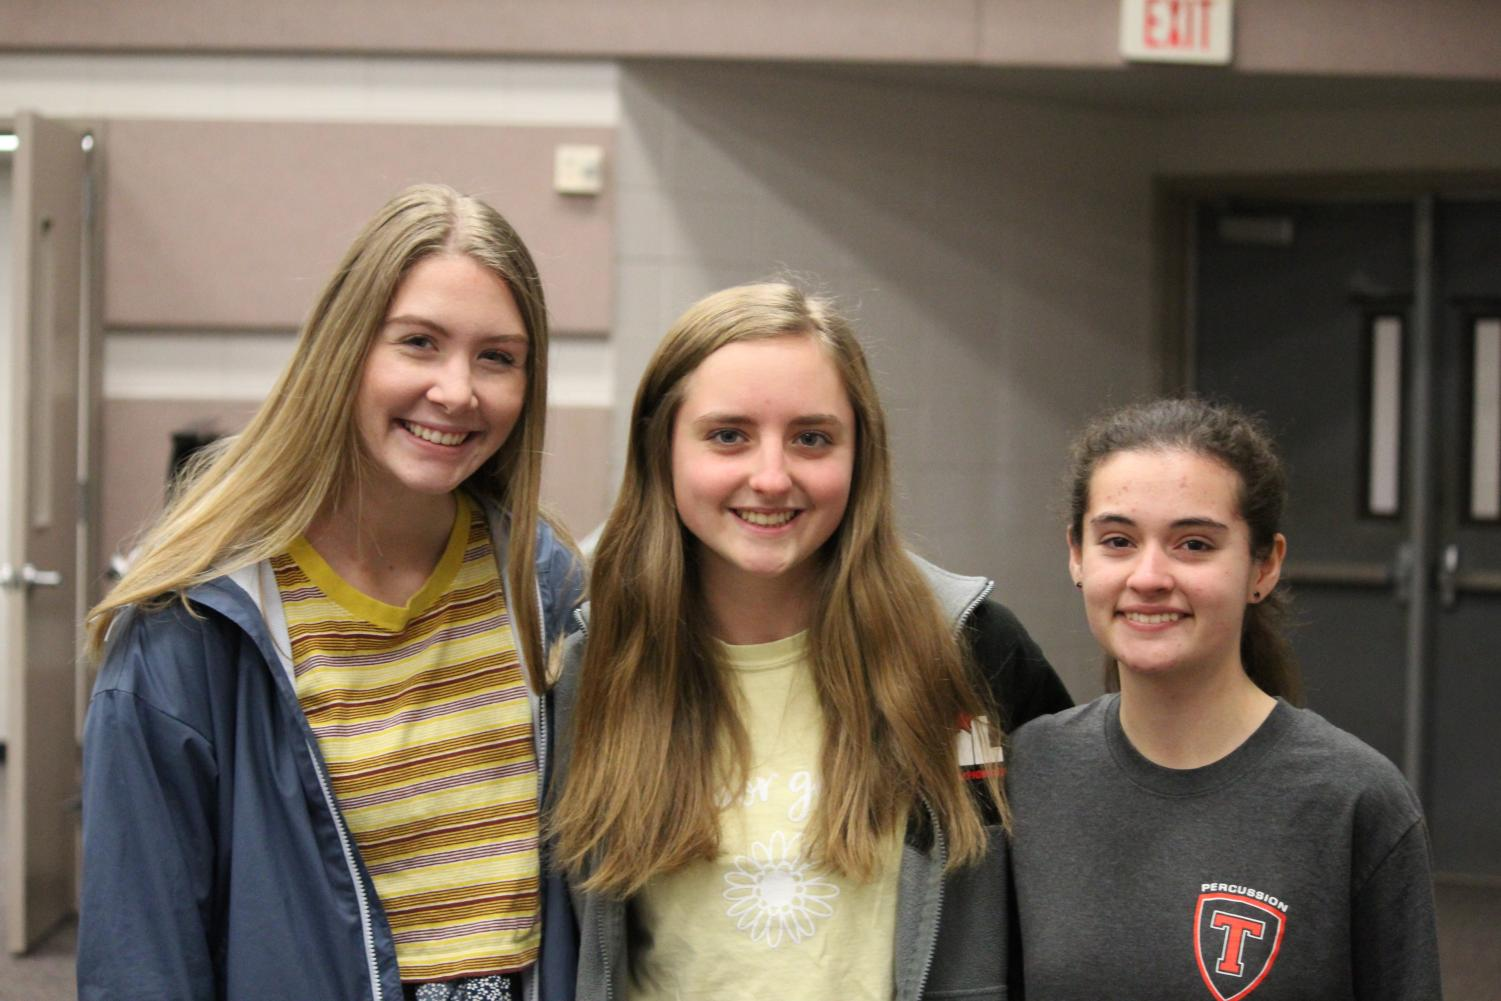 Leilani Foreman (left), Summer Bruner, Payton Icard (right) earned spots on the 6A Band.